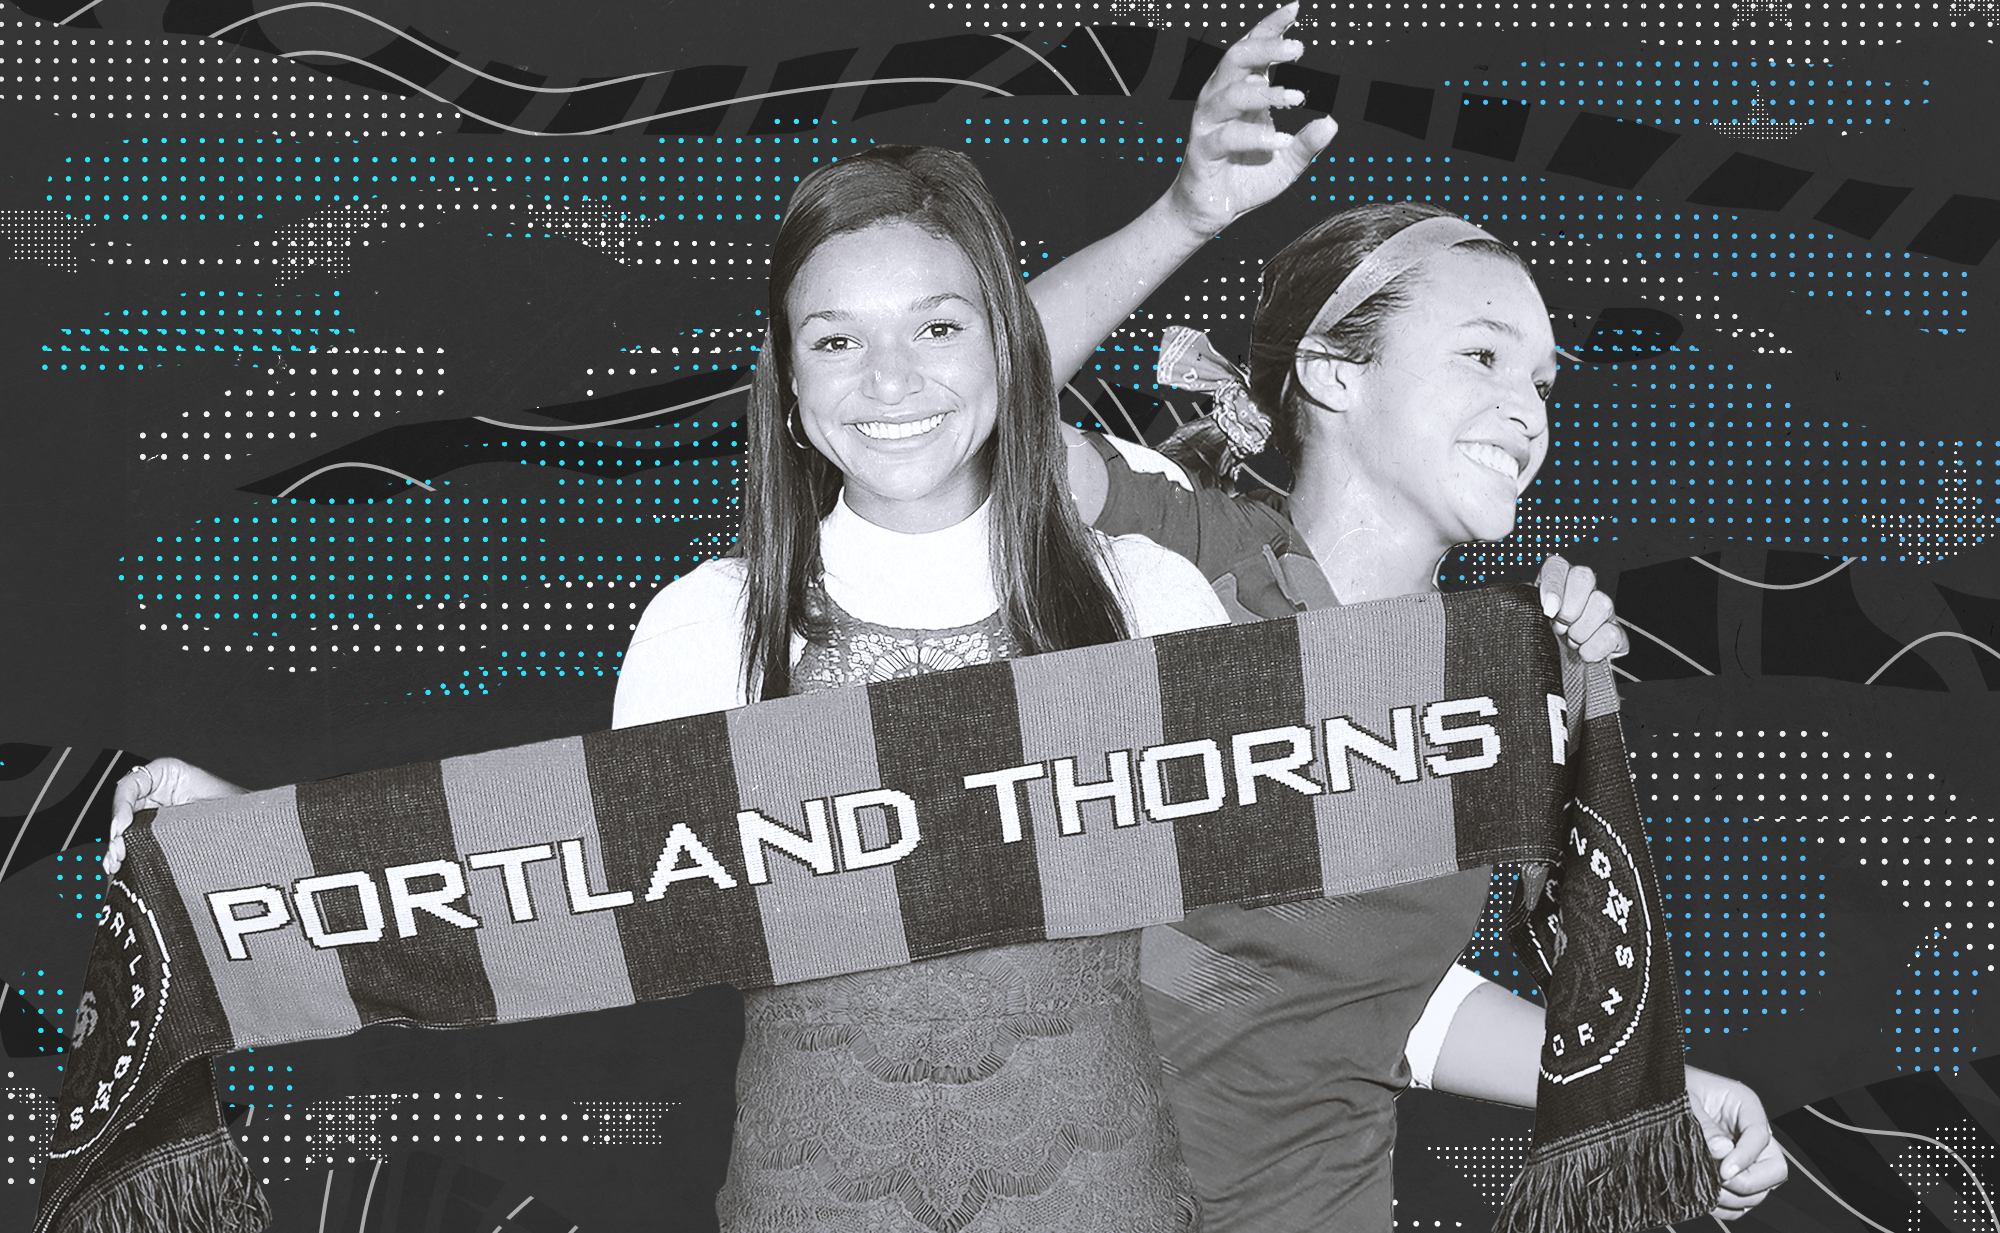 Black and white collage of Sophia Smith holding a Portland Thorns banner after being drafted No. 1 overall, and Smith celebrating during a national team match.